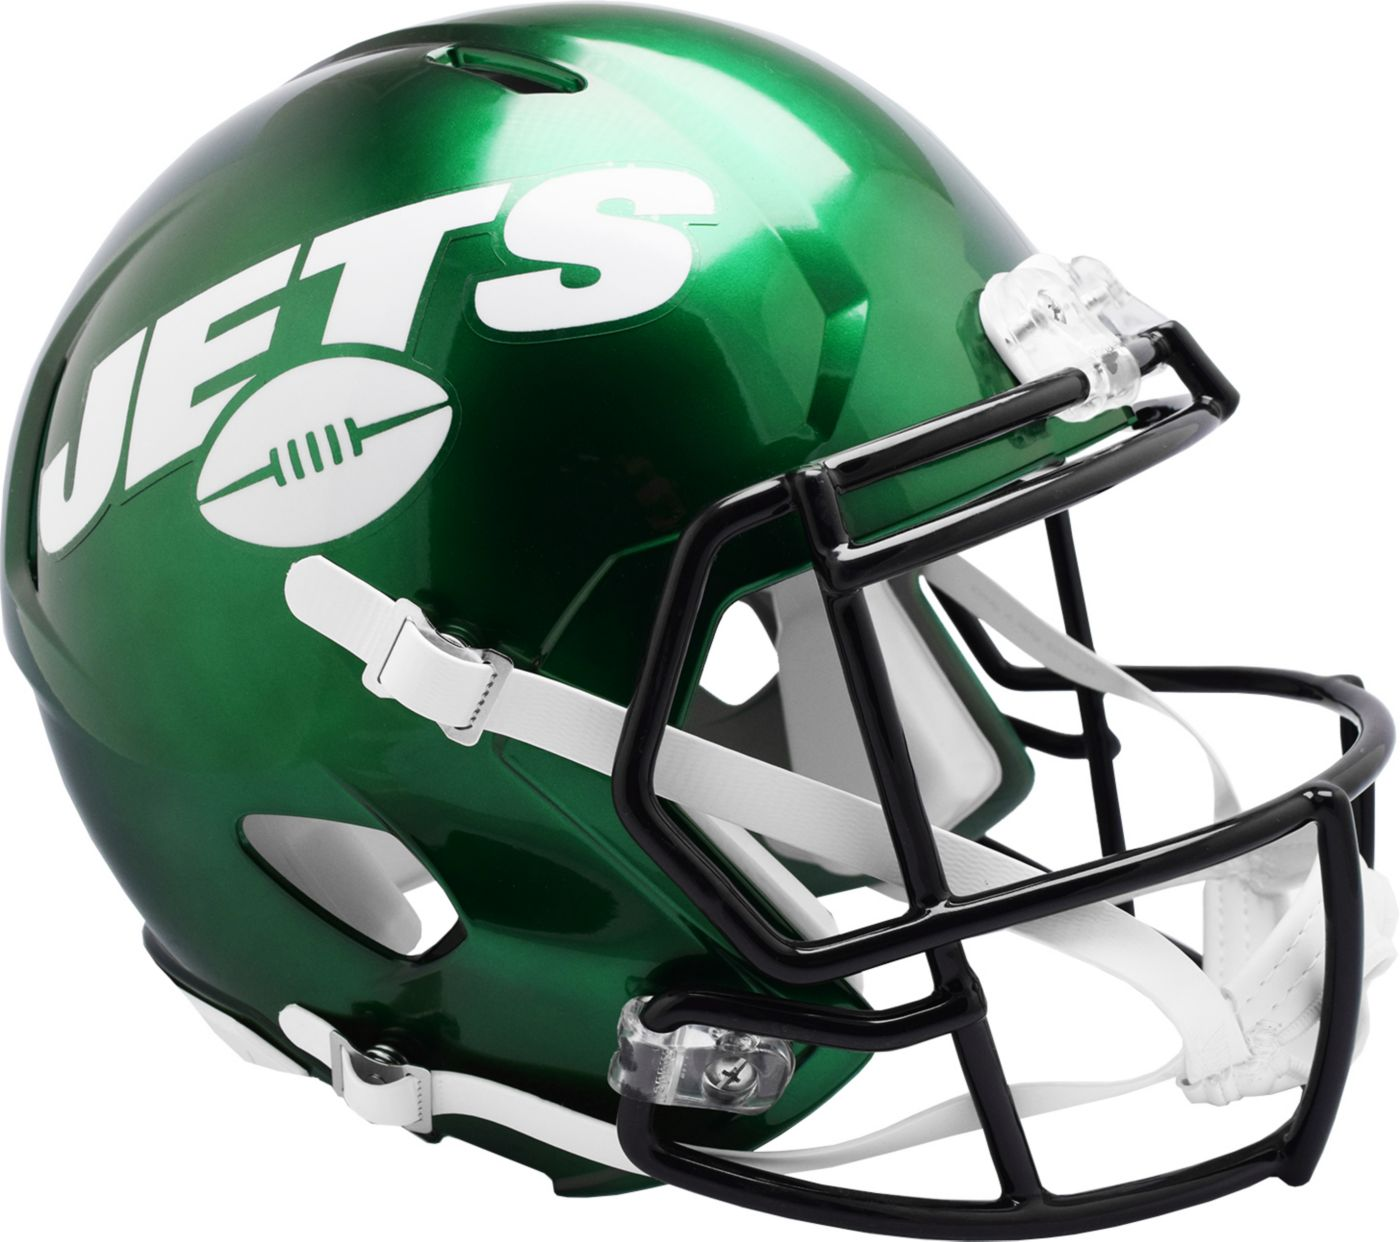 Riddell New York Jets Speed Replica Football Helmet